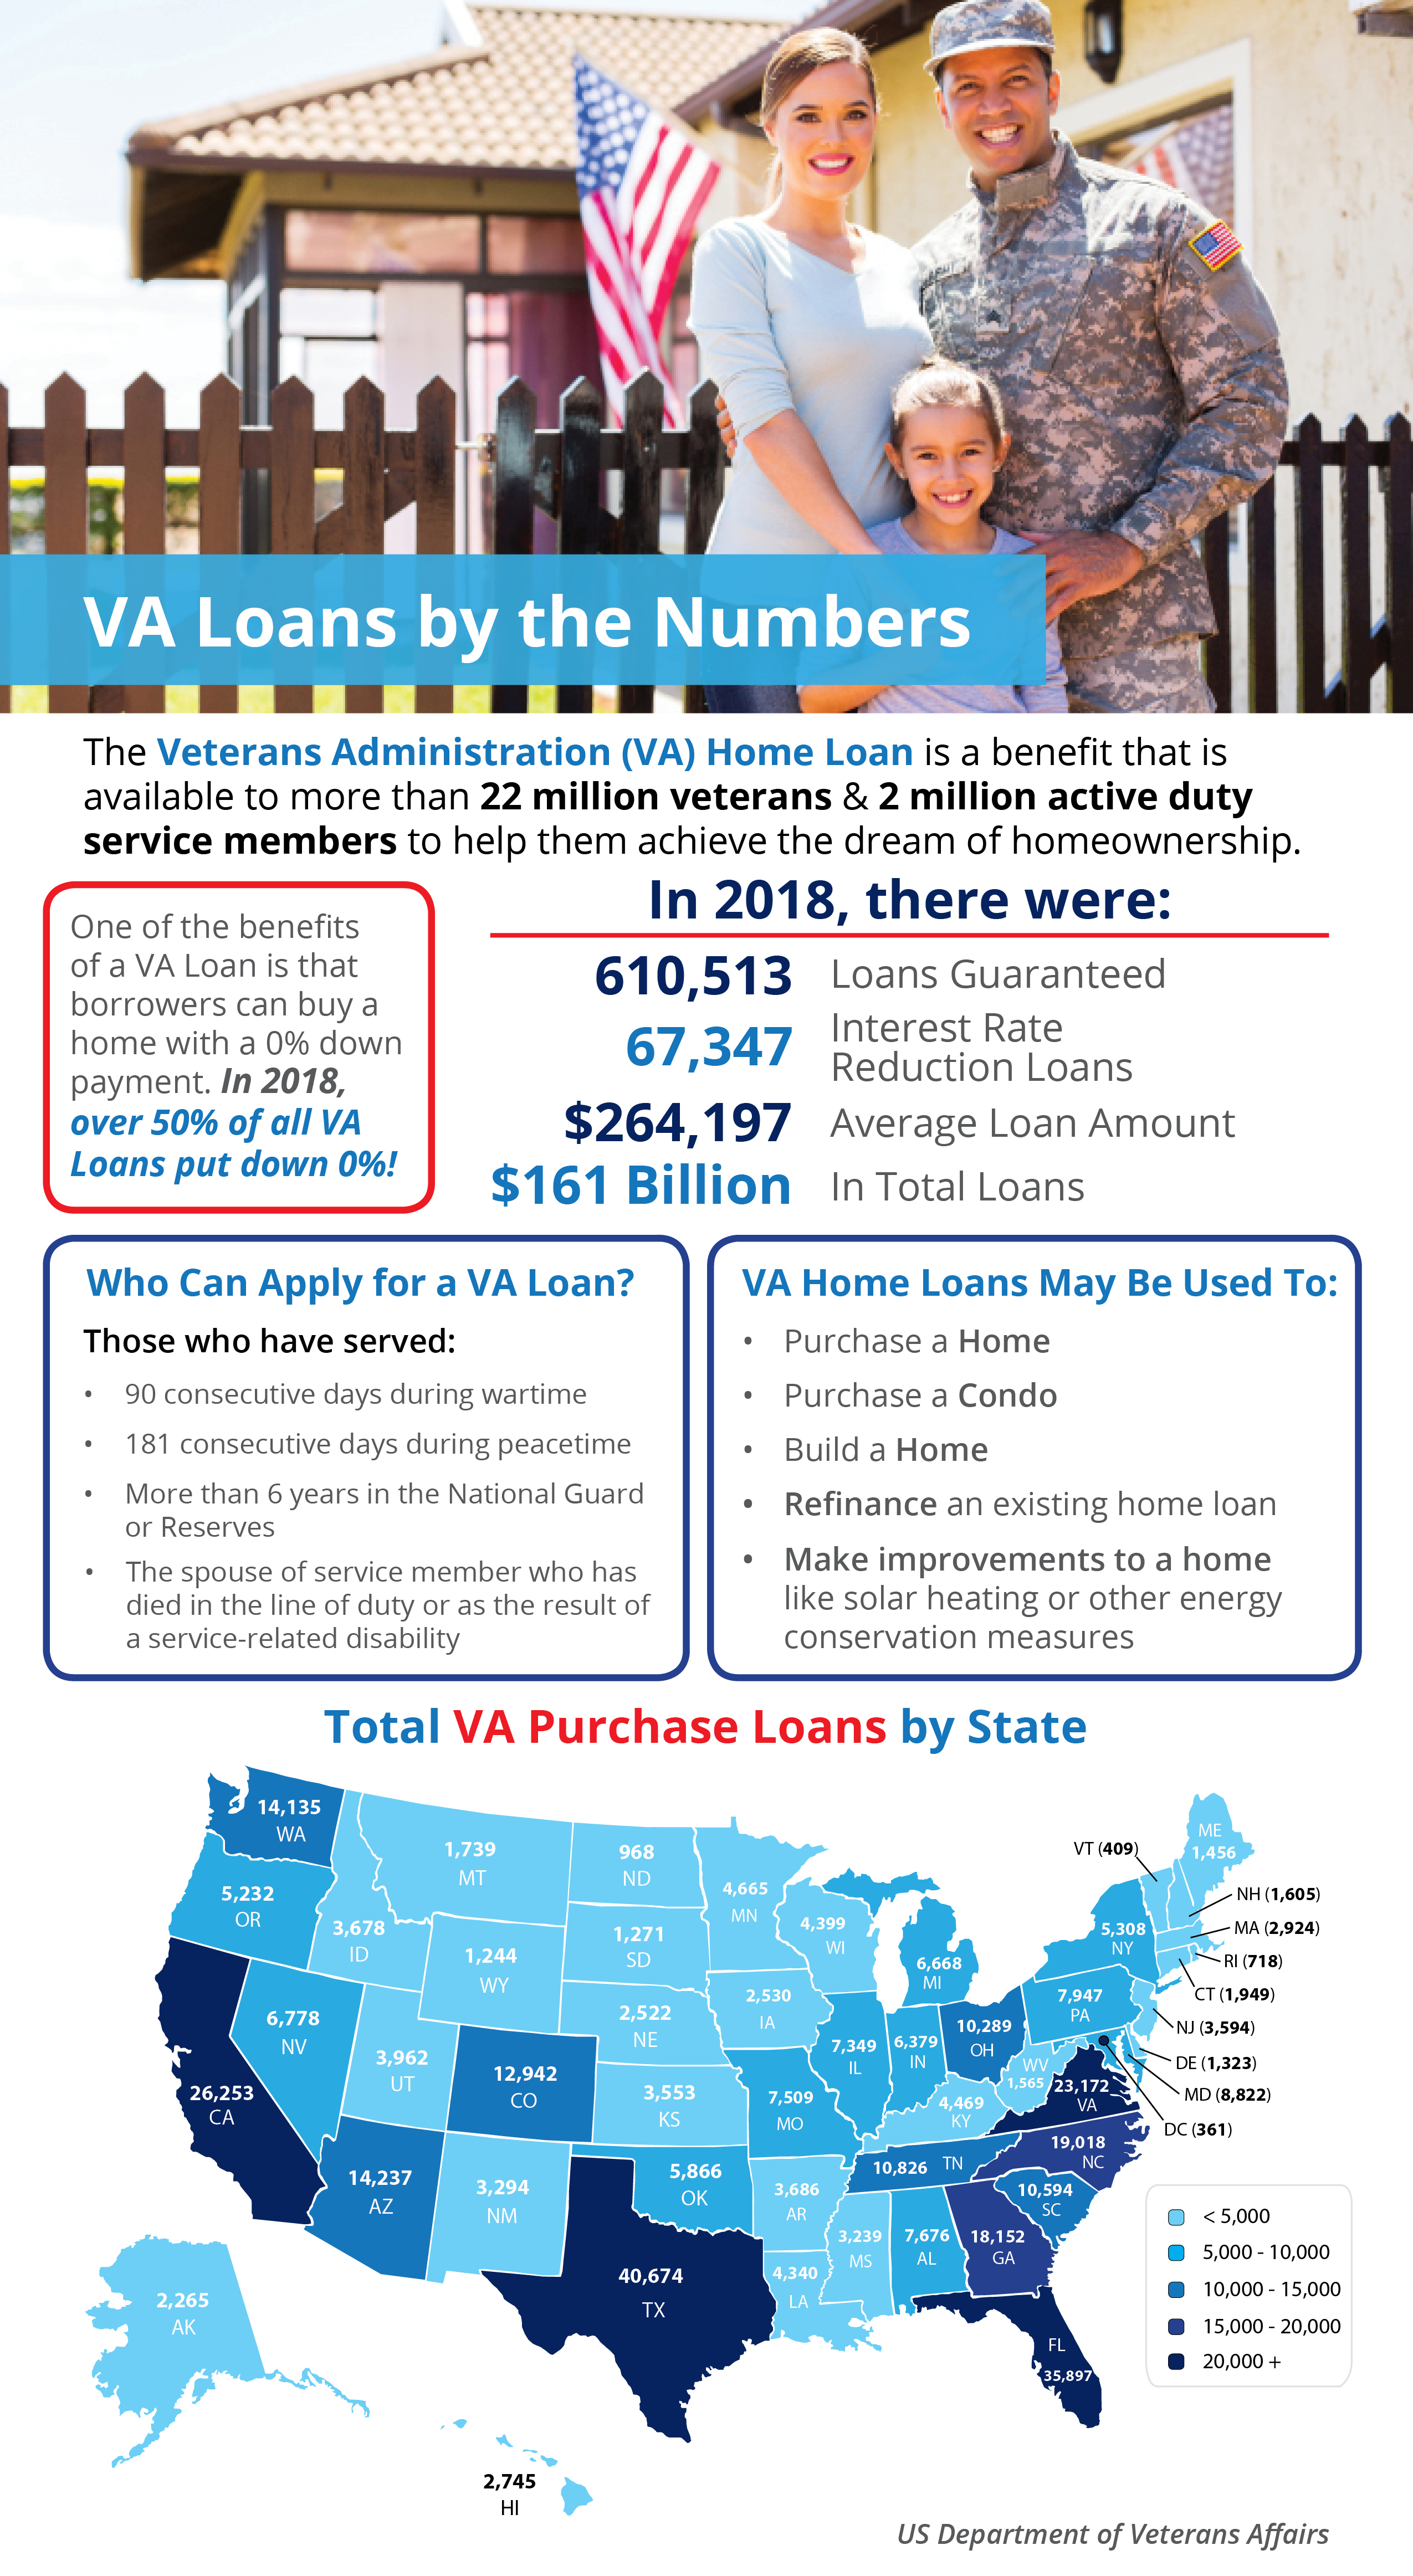 VA Home Loans by the Numbers [INFOGRAPHIC]   MyKCM